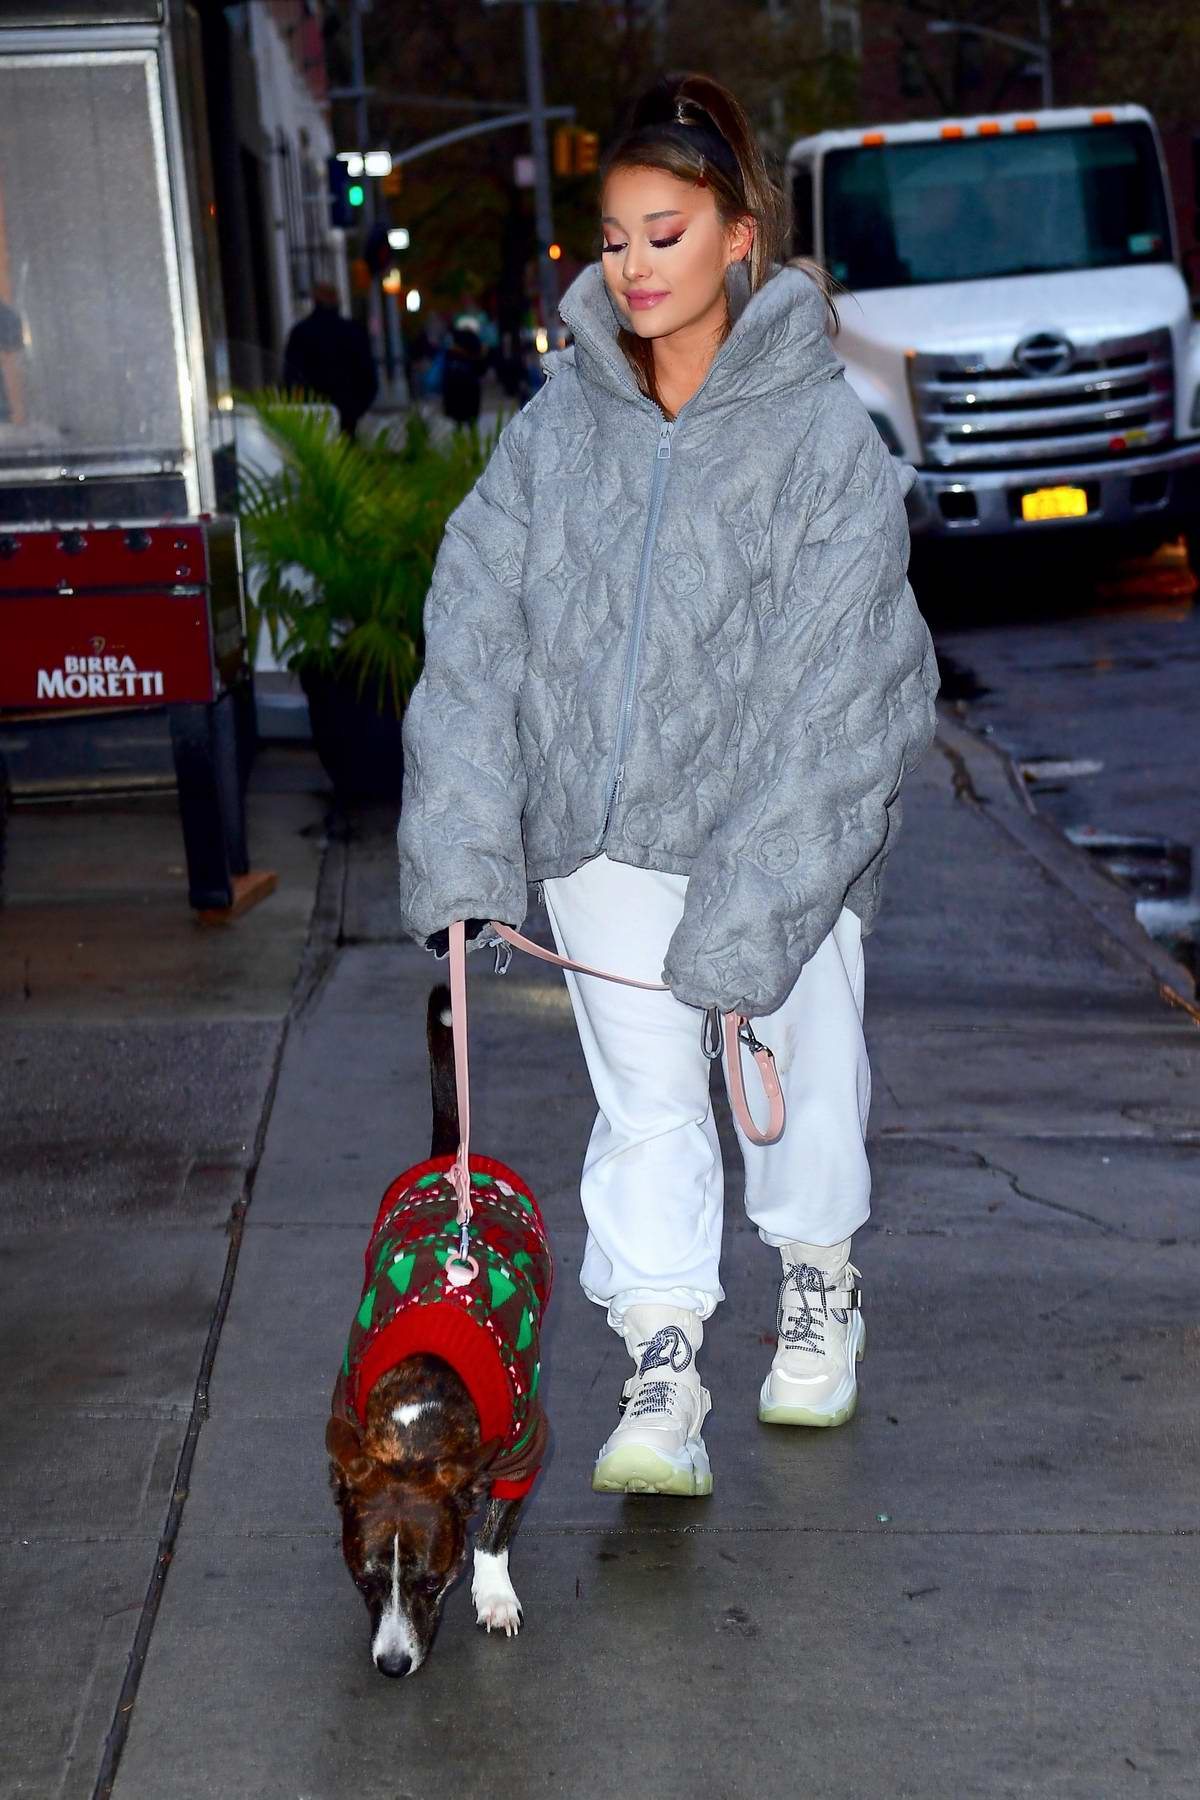 Ariana Grande wears a Louis Vuitton puffer jacket as she steps out with her dog in New York City